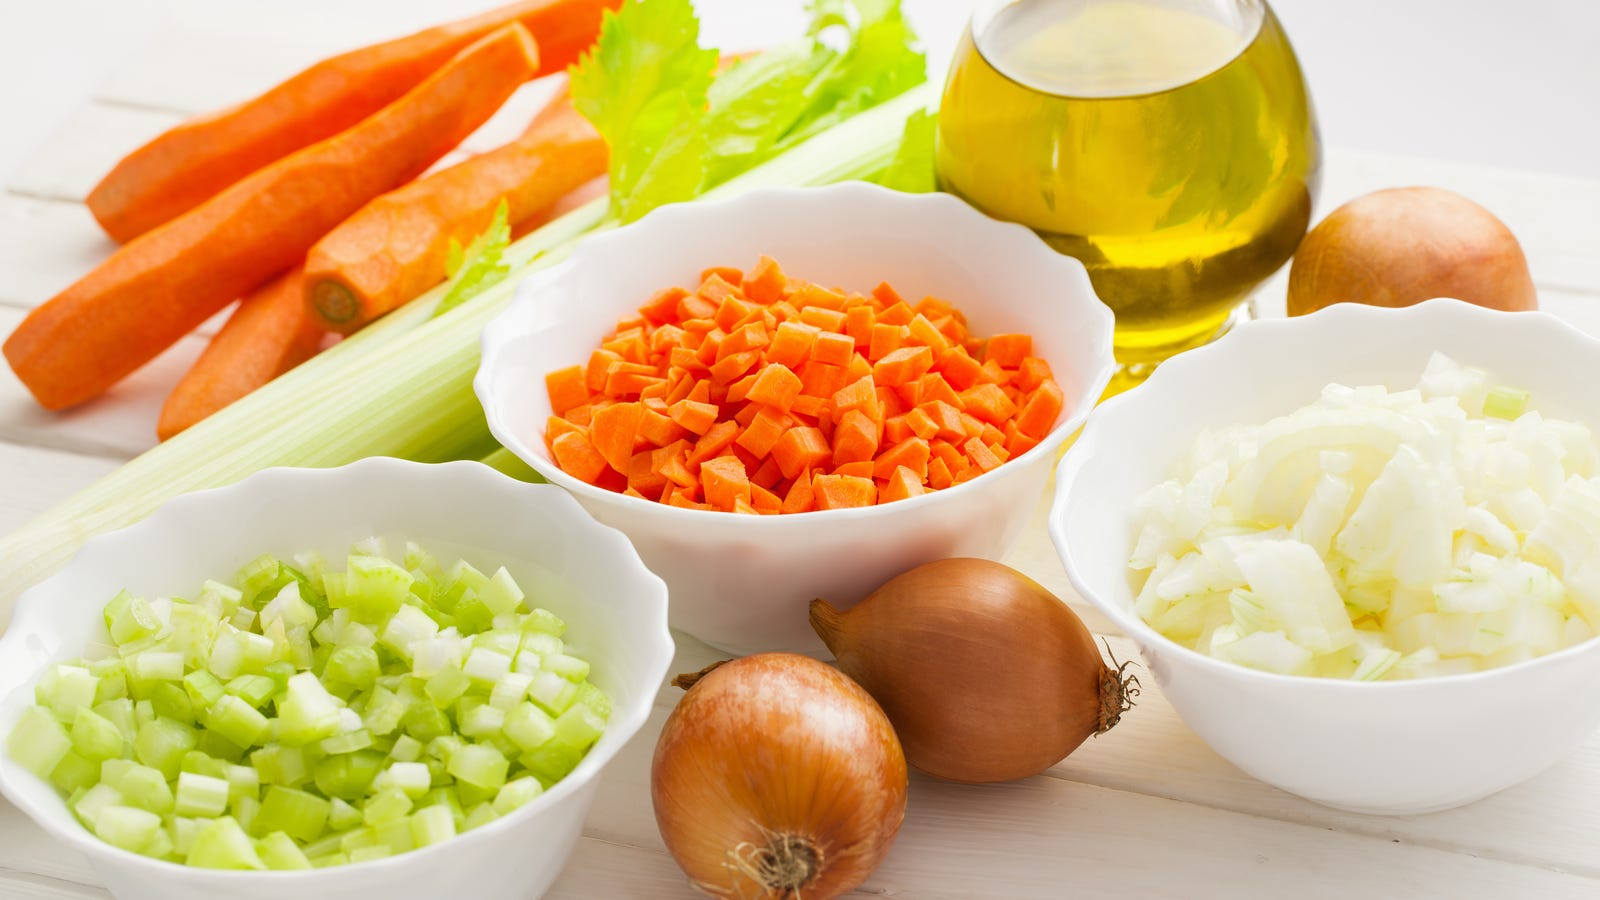 Three little bowls filled with aromatic ingredients including onion, celery and carrots with oil in the background.